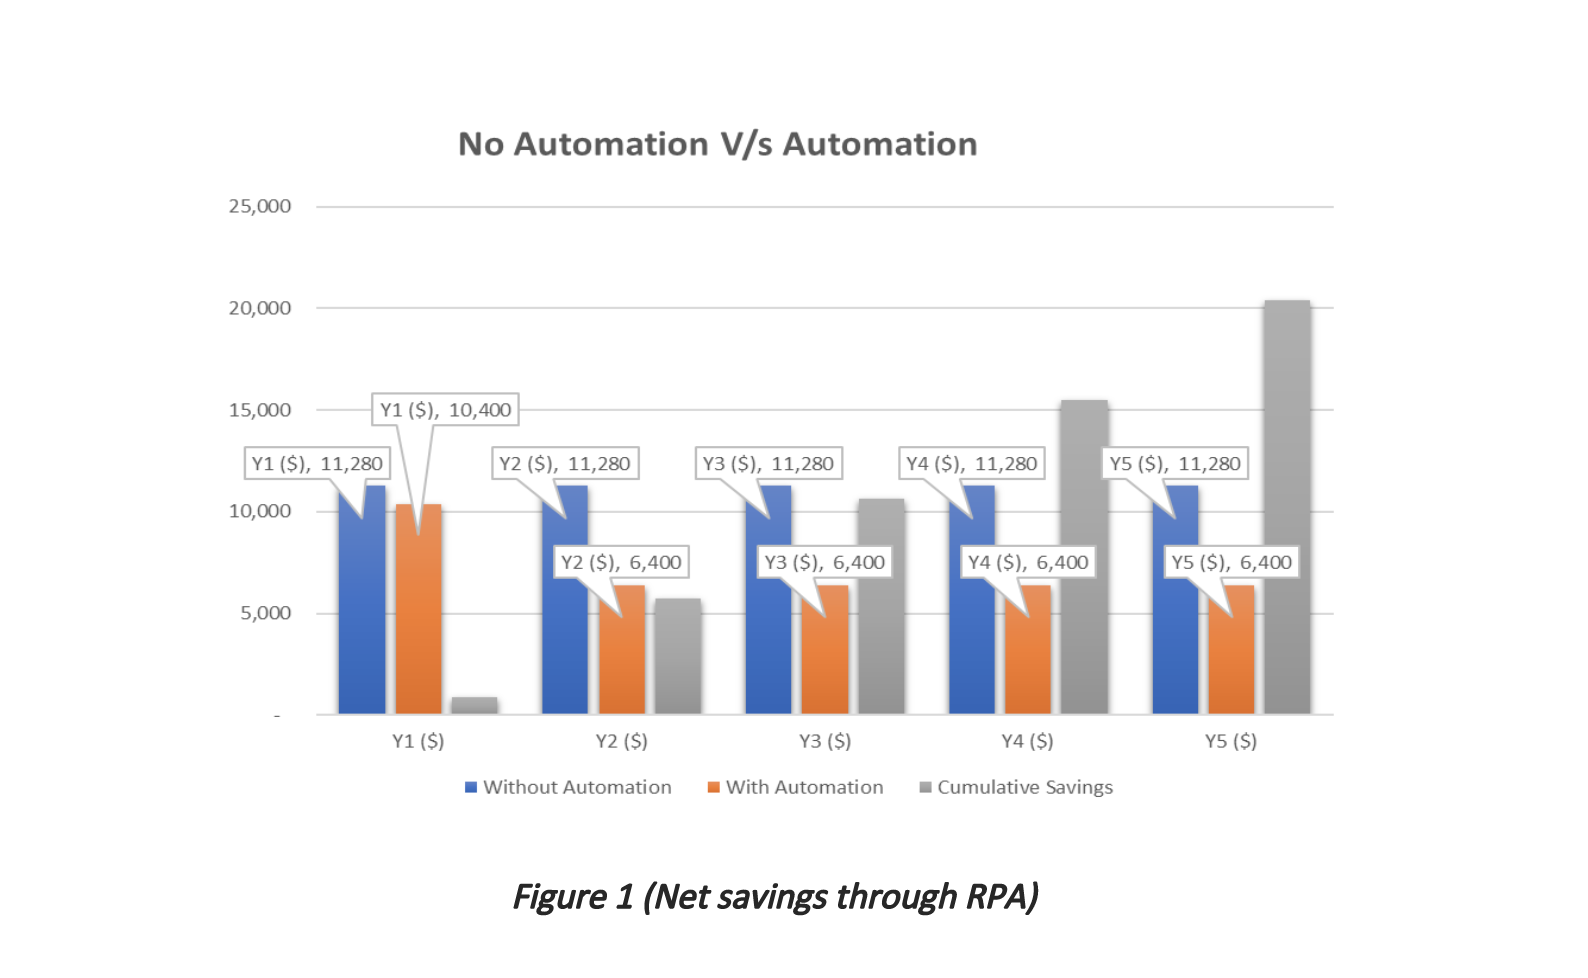 Figure 1 (Net savings through RPA)